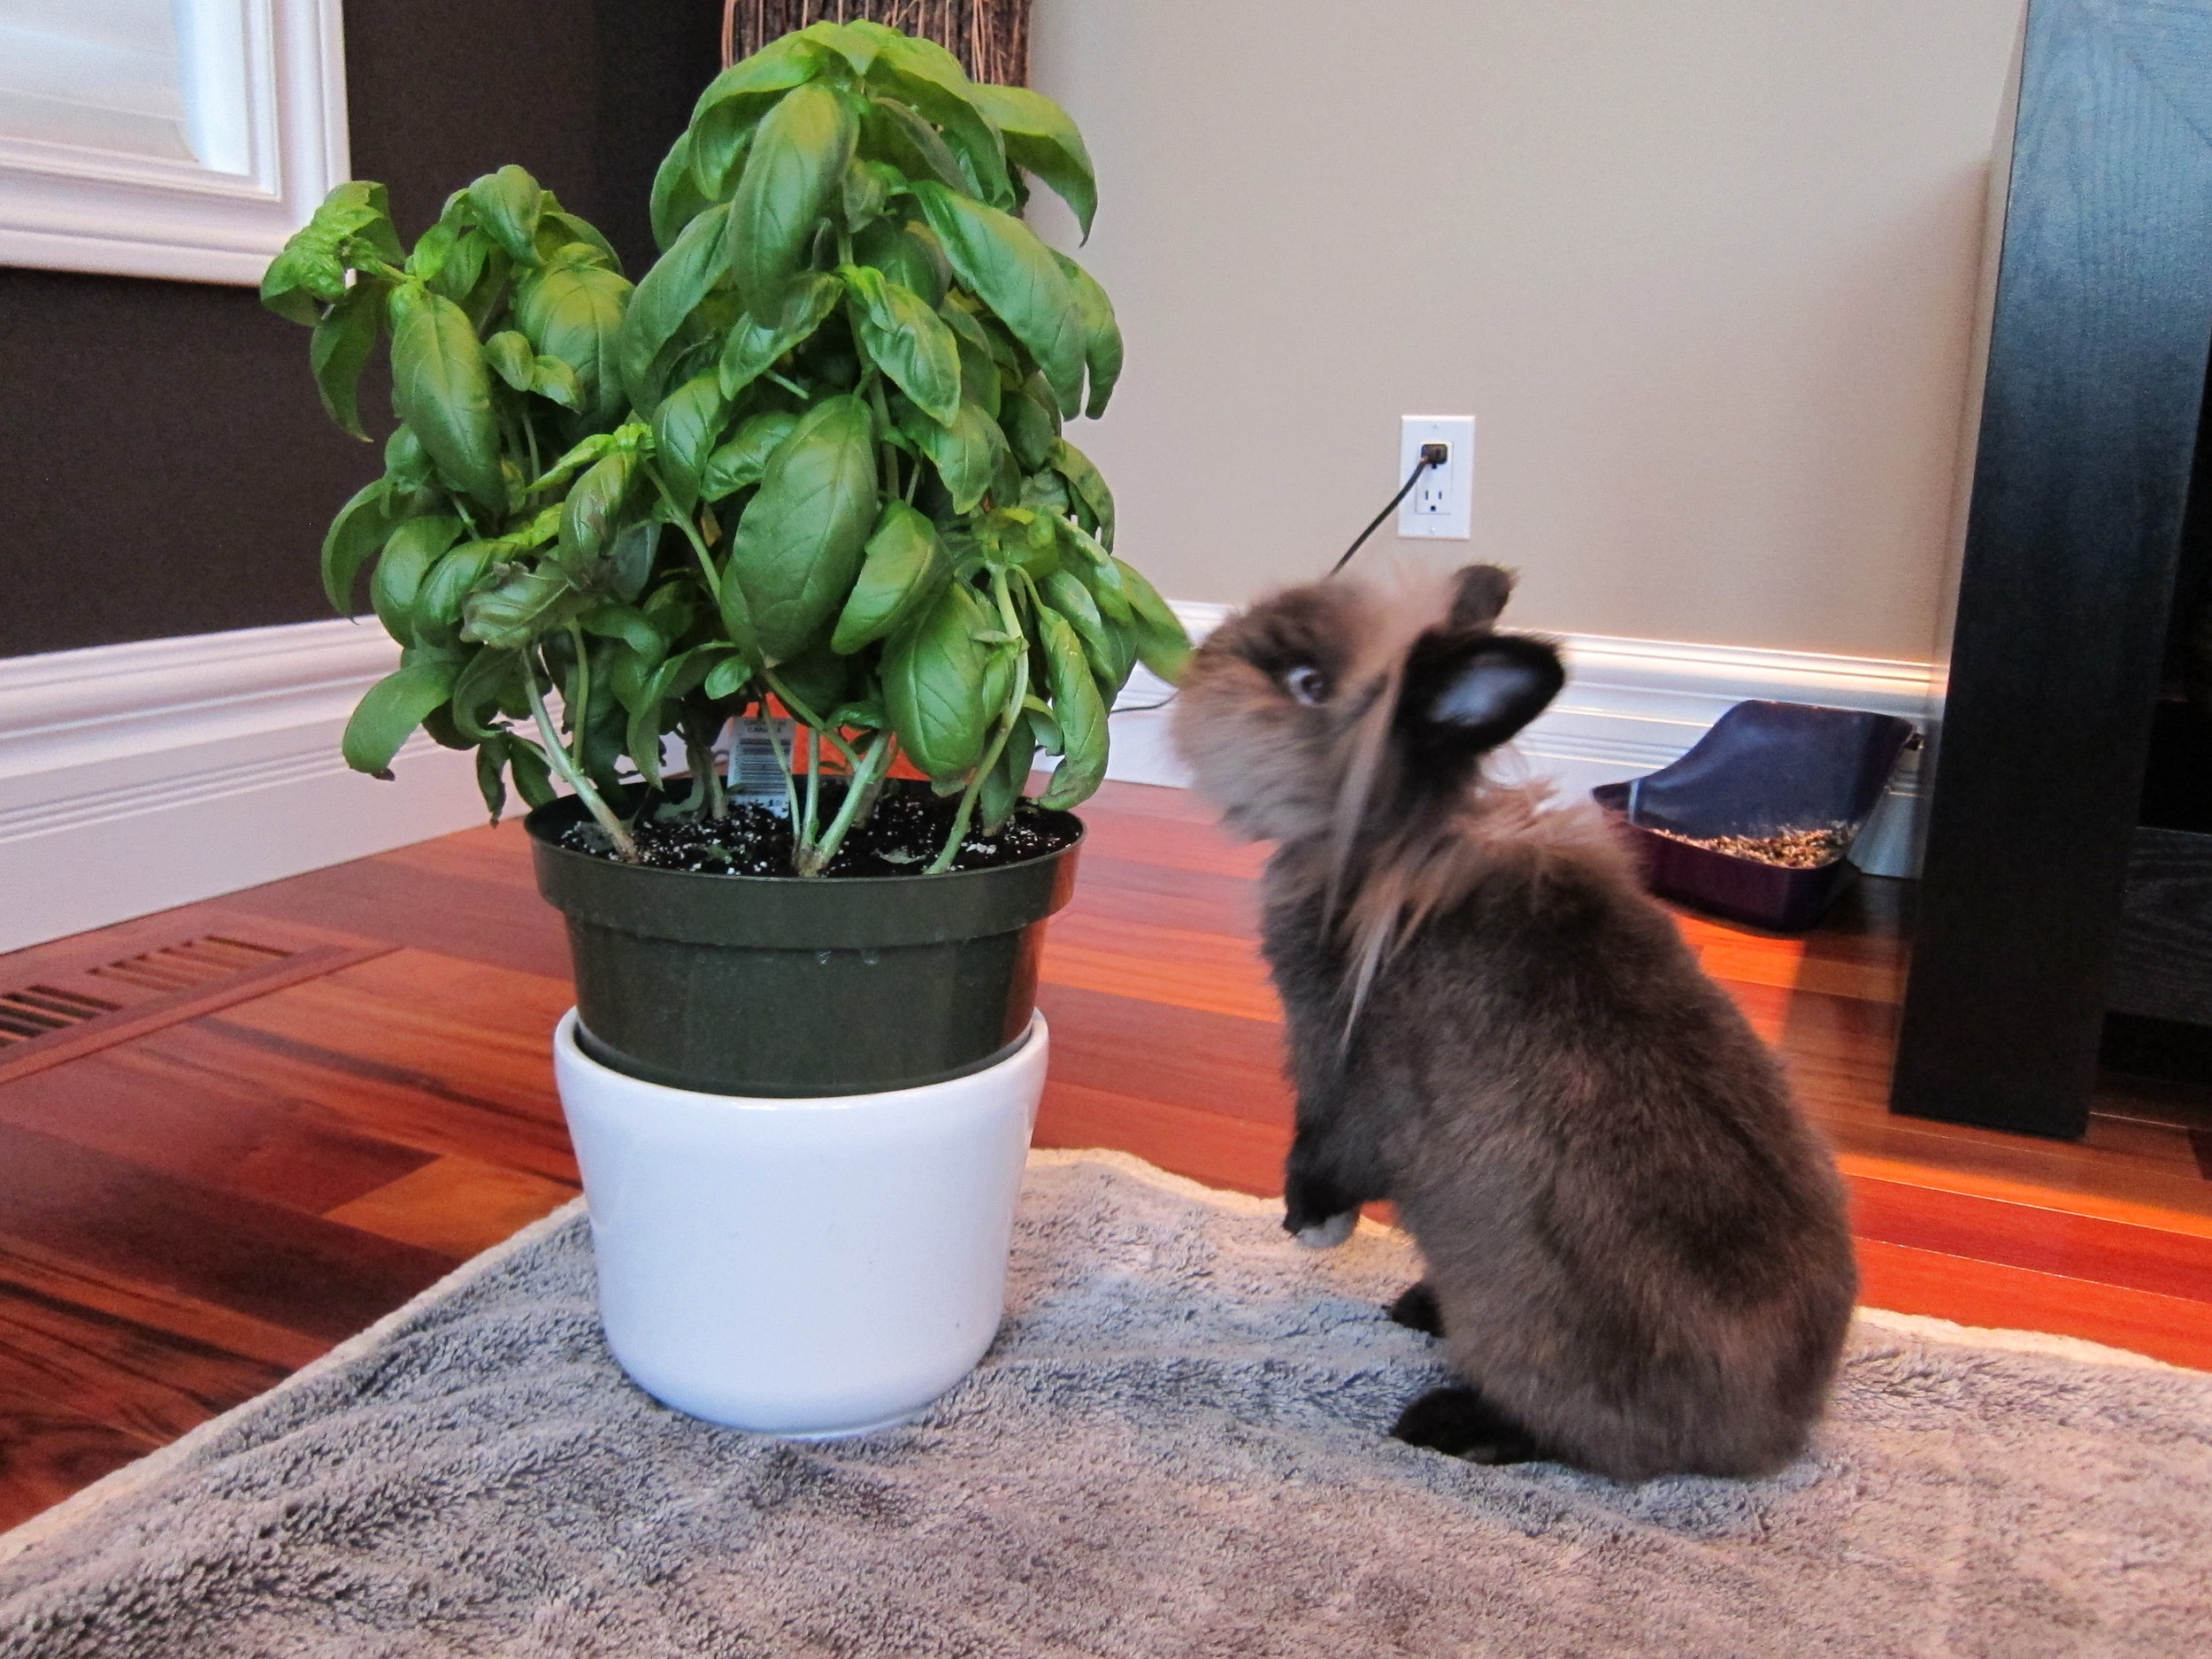 Bunny Helps Himself to the Basil Plant 2